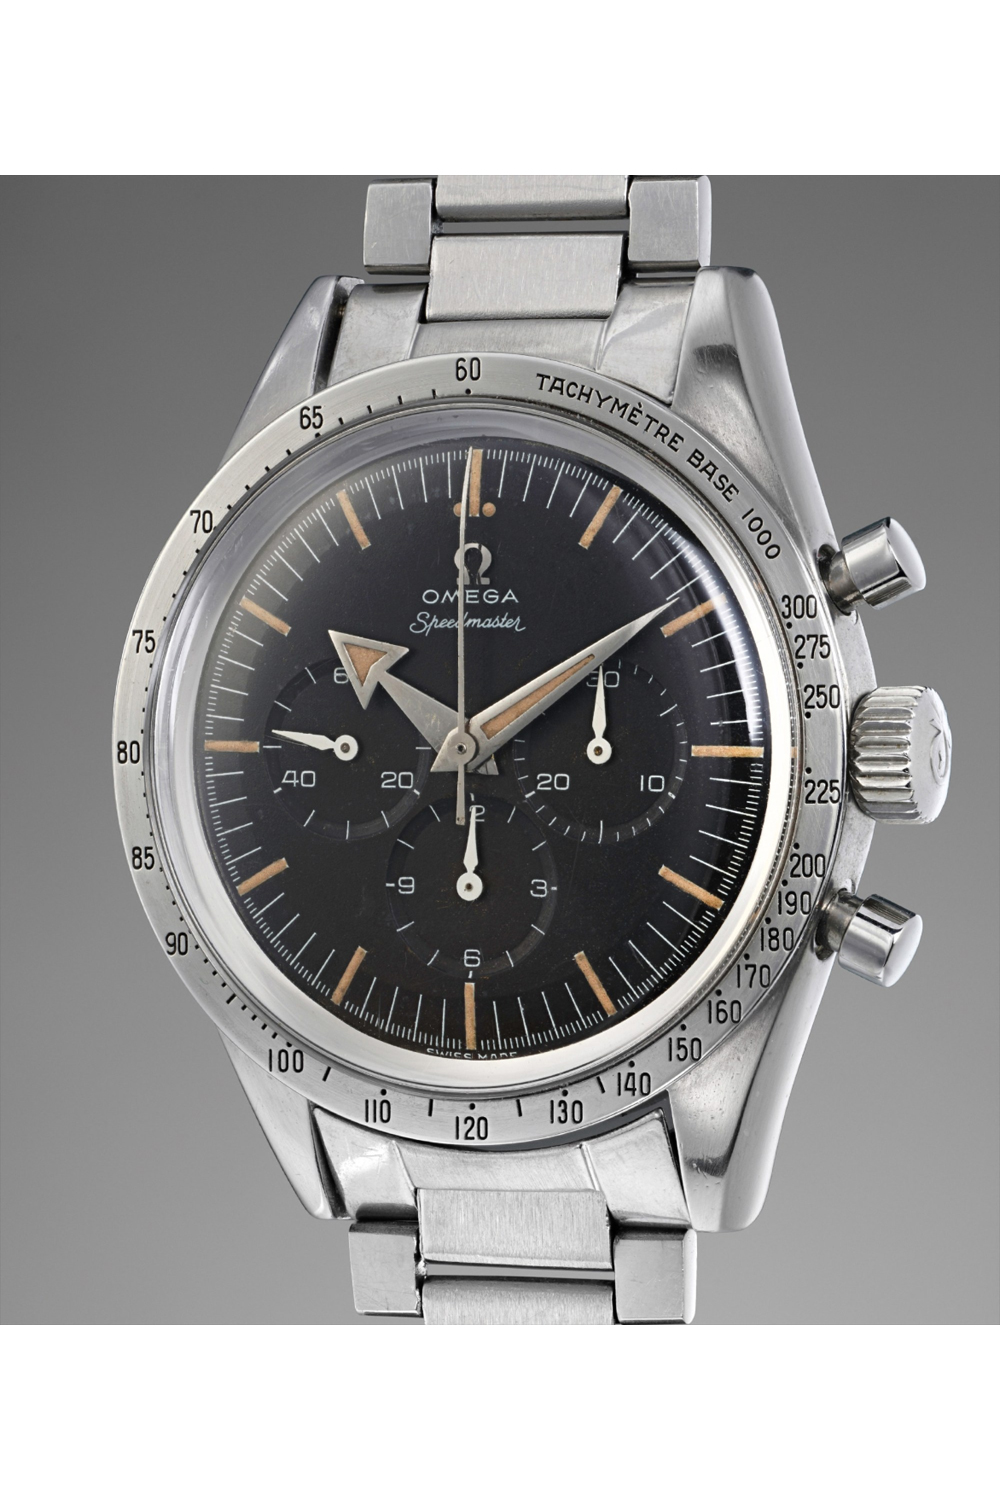 The Omega Speedmaster launched in 1957 was the very first chronograph with the tachymeter featured on the bezel of the watch; it was also one of the first Omega watches to use the Lemania 2310-based calibre 321; seen here is the CK2915-1 sold by Phillips, at their Geneva Watch Auction on 12 May 2018, for CHF408,500 against an estimate of CHF 80,000-140,000 (Image: phillipswatches.com)